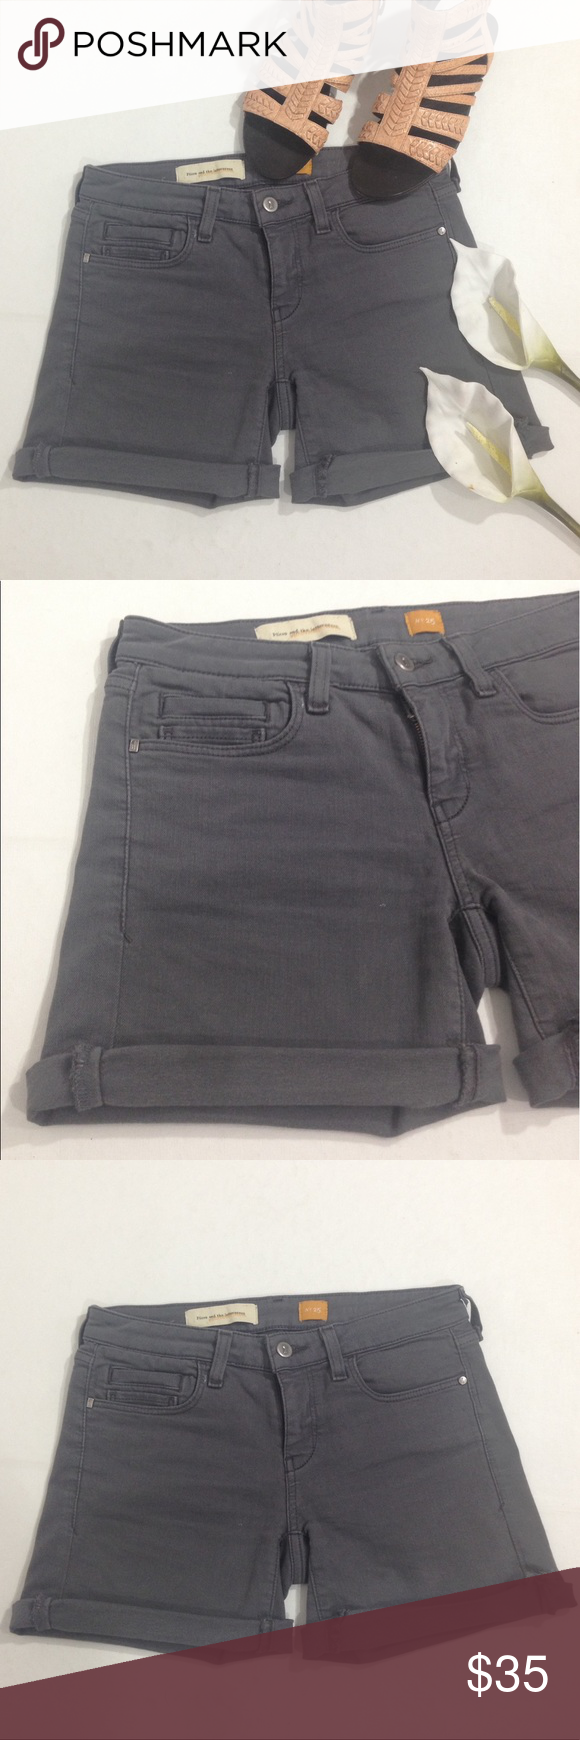 """ANTHROPOLOGIE PILCRO & THE LETTERPRESS GRAY SHORTS In very good condition, show signs of gentle wear. Cuffed legs, mid-rise. Platinum color. Size 25. Cotton 92%, 7% polyester, 1% Elastane. Measurements: waist side to side: 14"""", Rise: 7.5"""", Inseam: un-cuffed: 6"""". Pilcro and The Letterpress  Shorts Jean Shorts"""